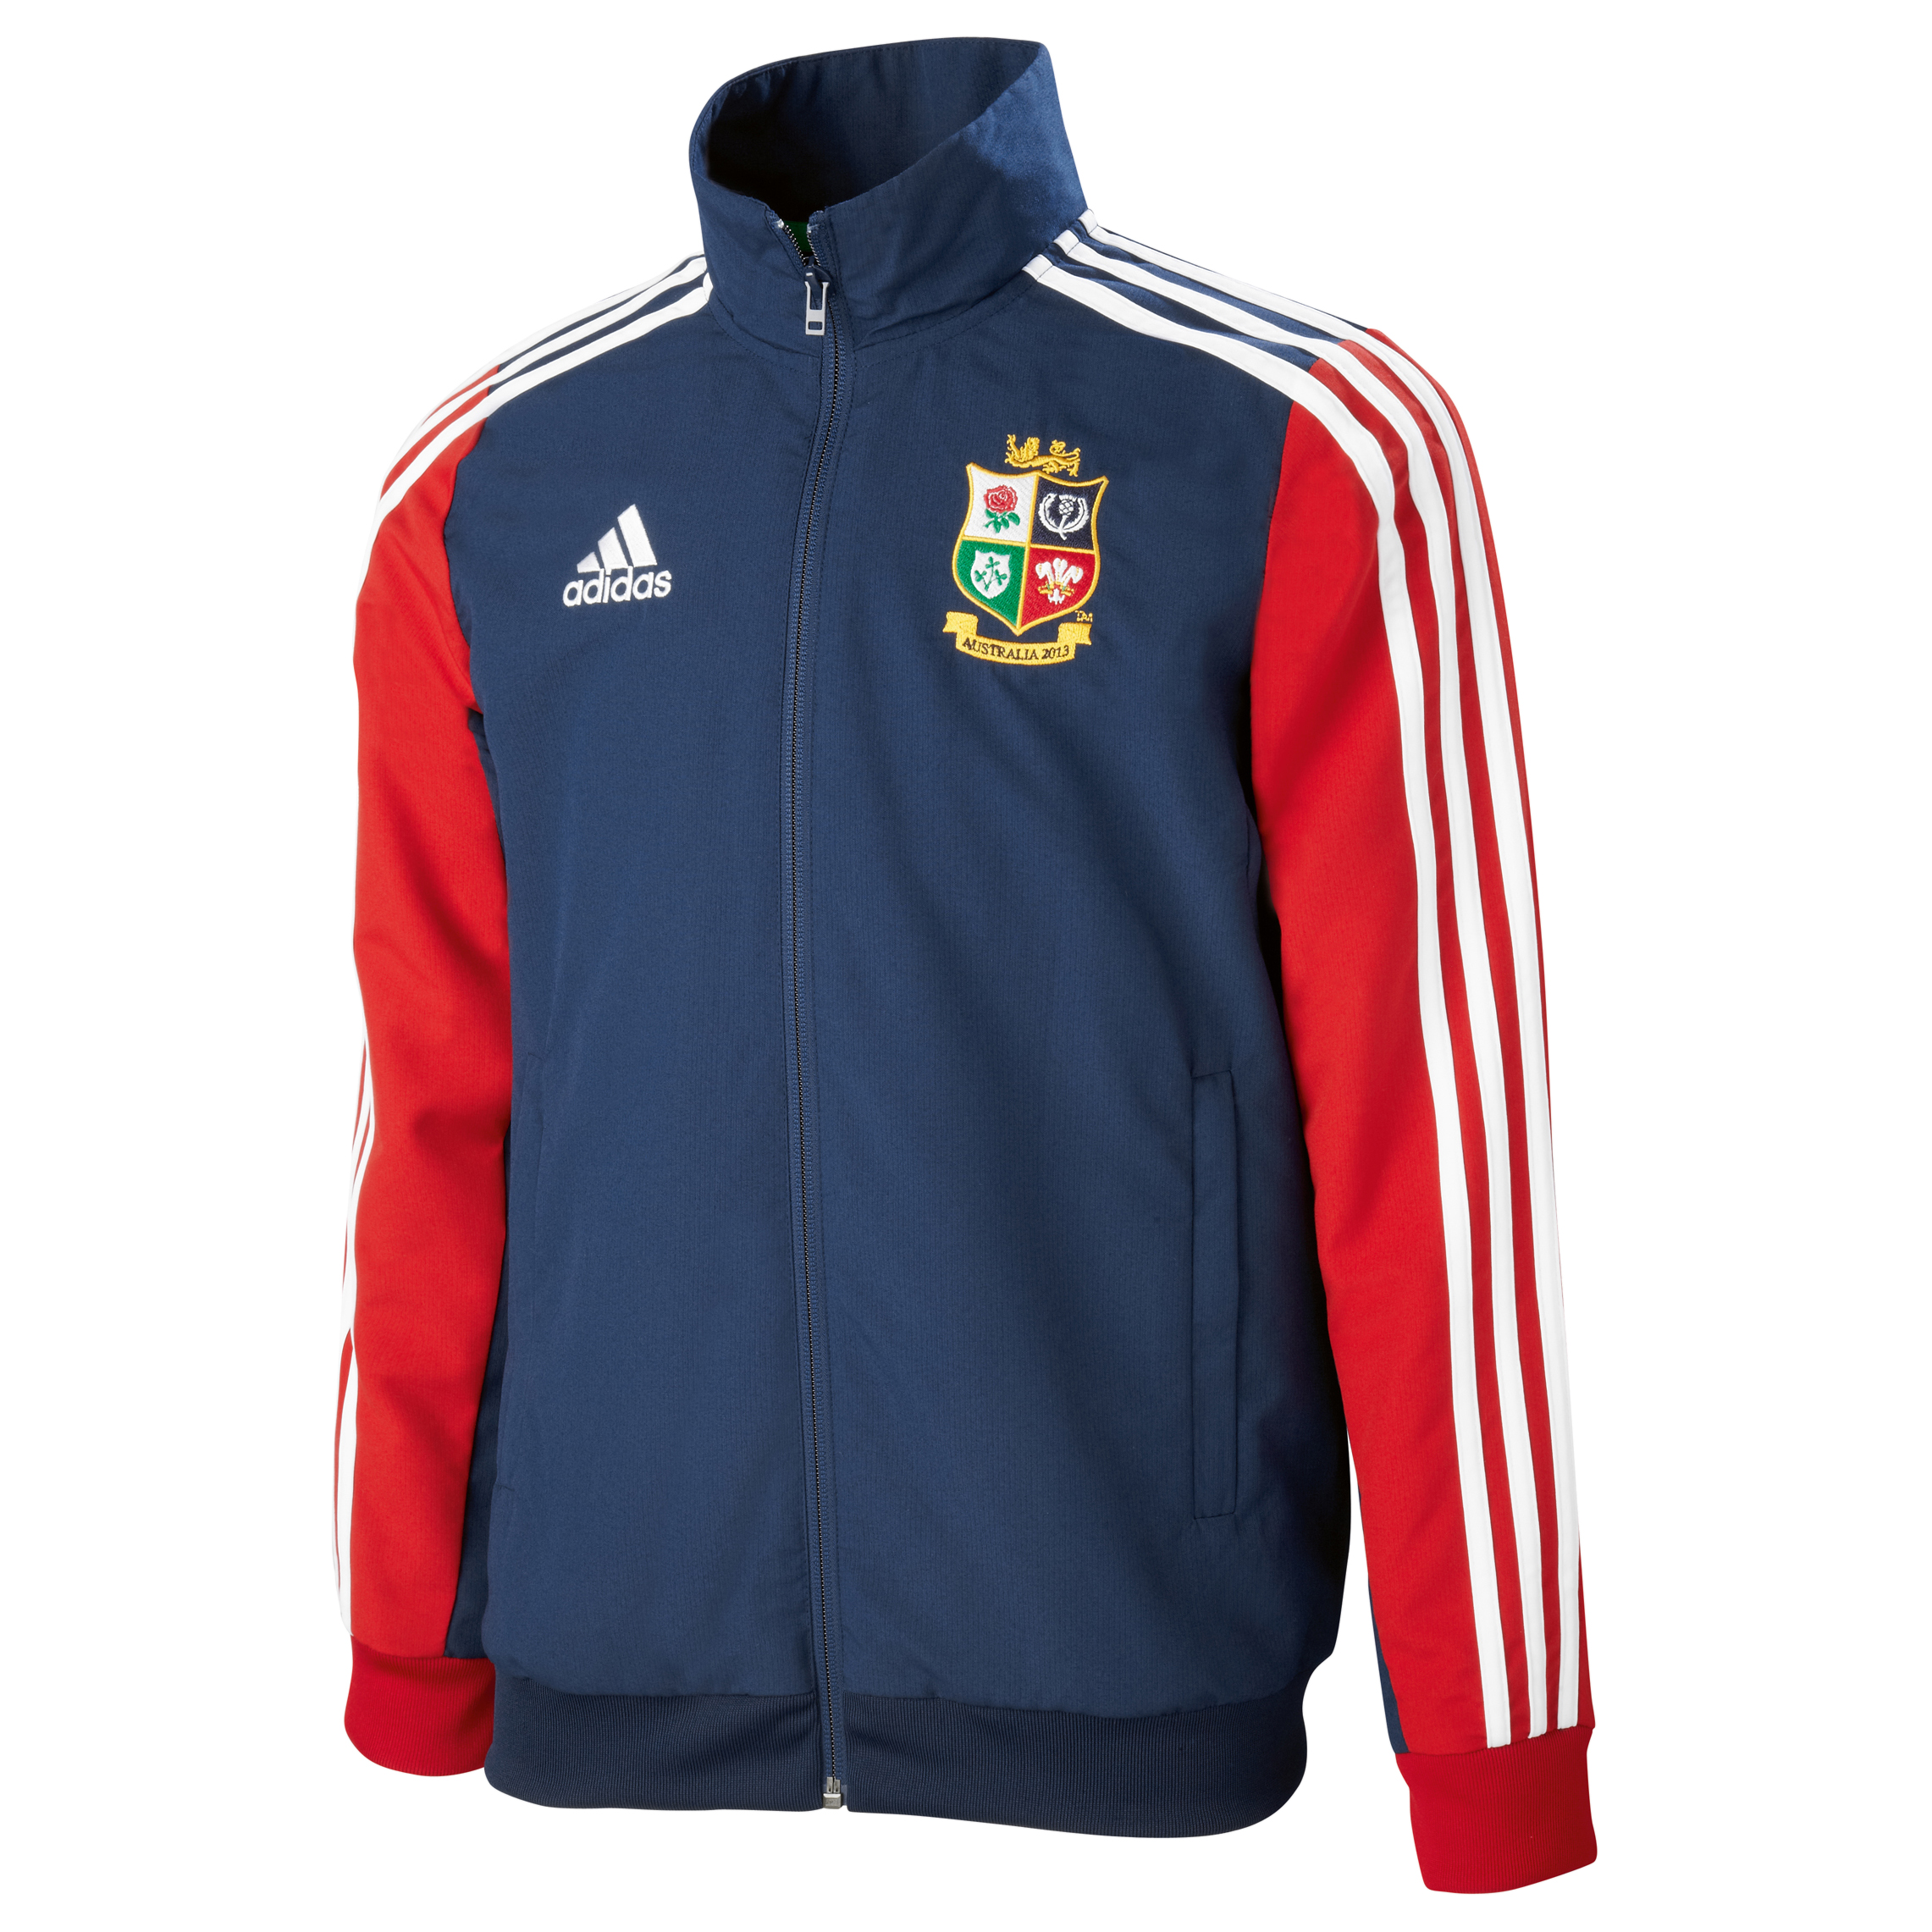 adidas British and Irish Lions Presentation Jacket - Collegiate Navy/University Red/White - Youths